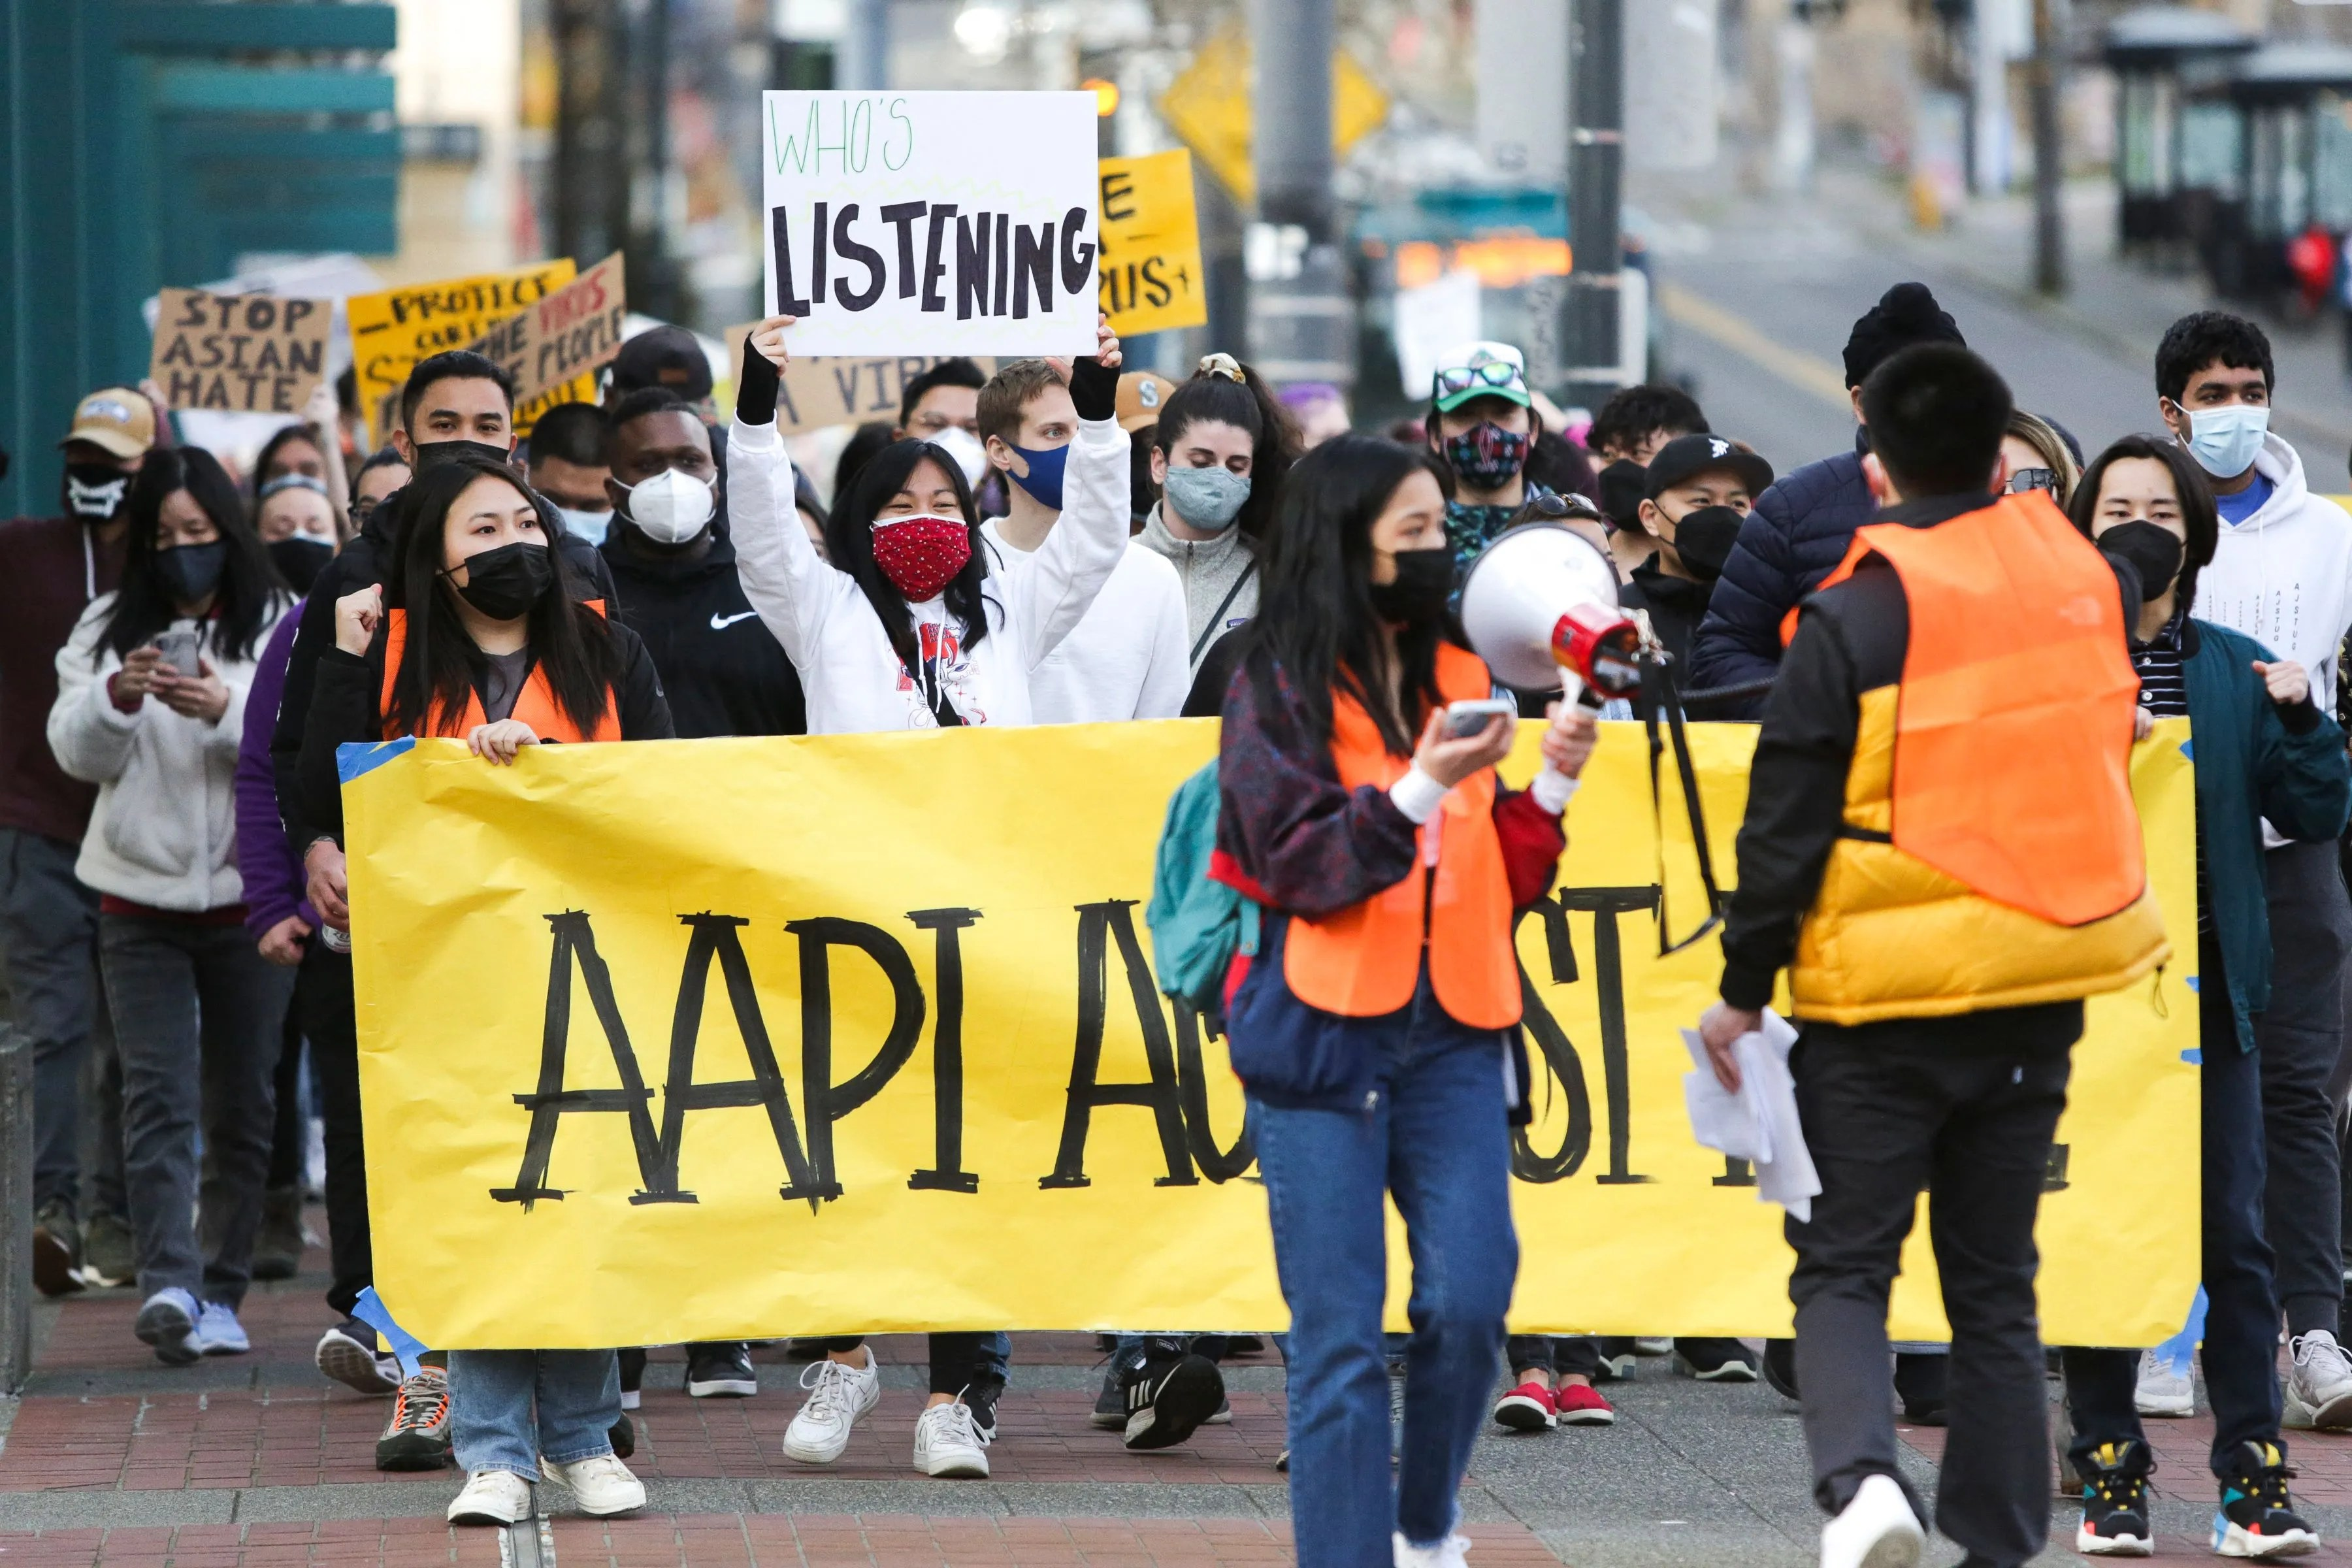 """People march during the """"We Are Not Silent"""" rally against anti-Asian hate in response to recent anti-Asian crime in the Chinatown-International District of Seattle on March 13, 2021."""